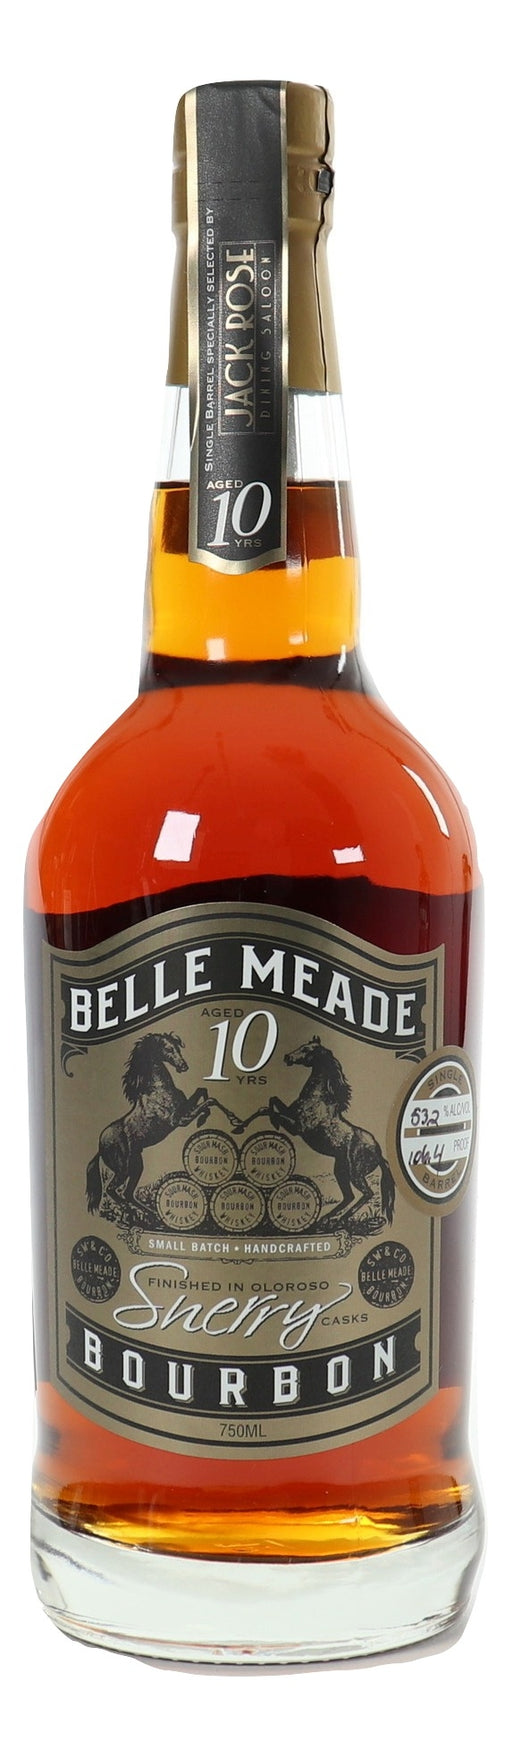 Belle Meade 10 Year Old  Sherry Finish Single Barrel - NativeSpiritsOnline